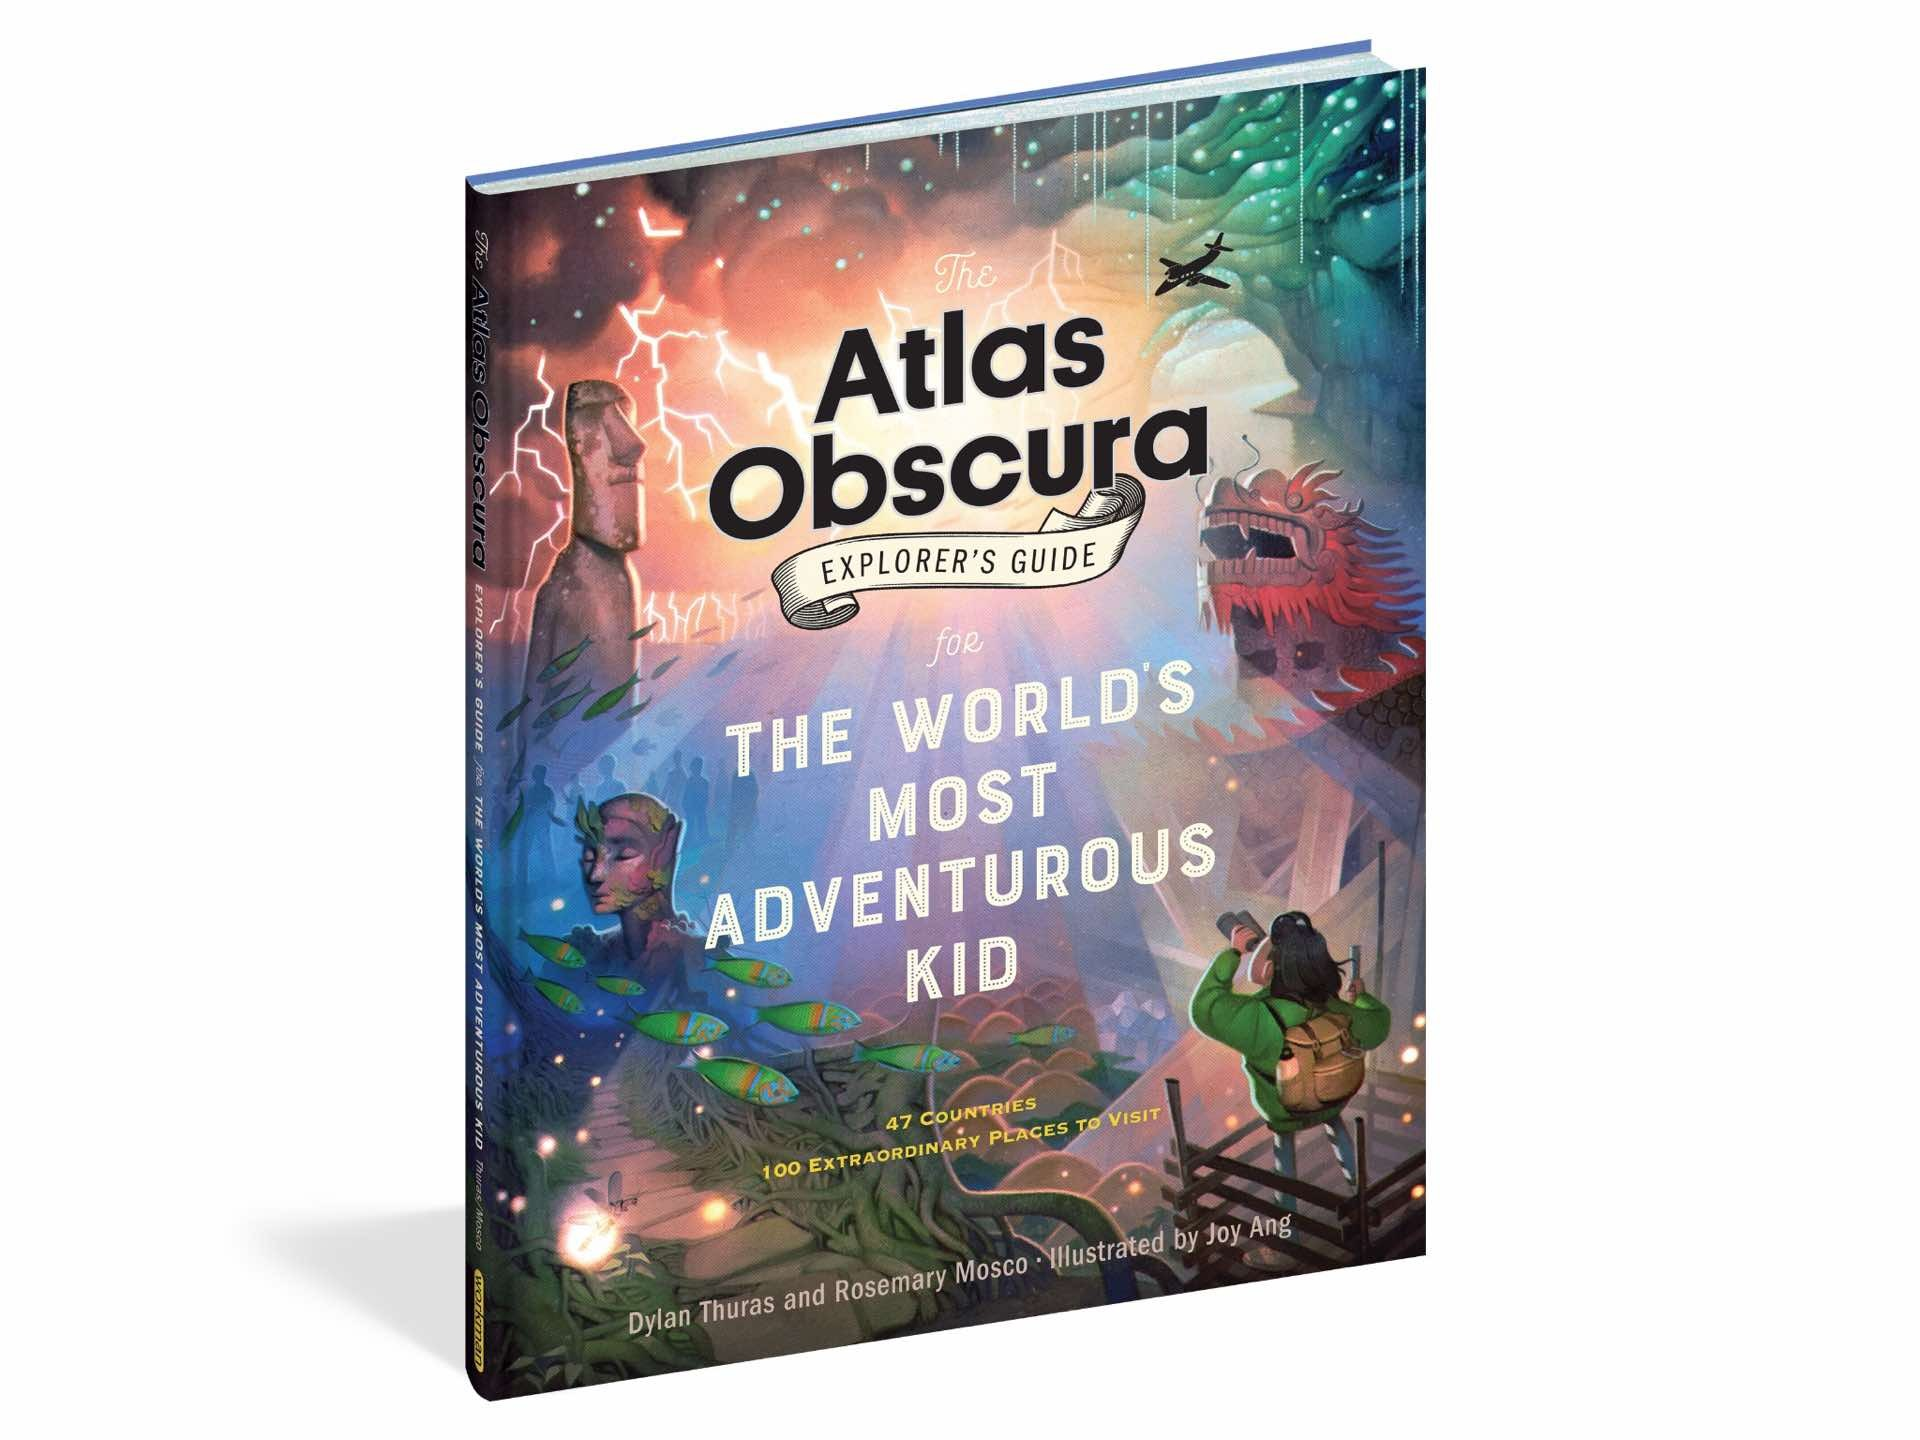 atlas-obscura-explorers-guide-for-the-worlds-most-adventurous-kid